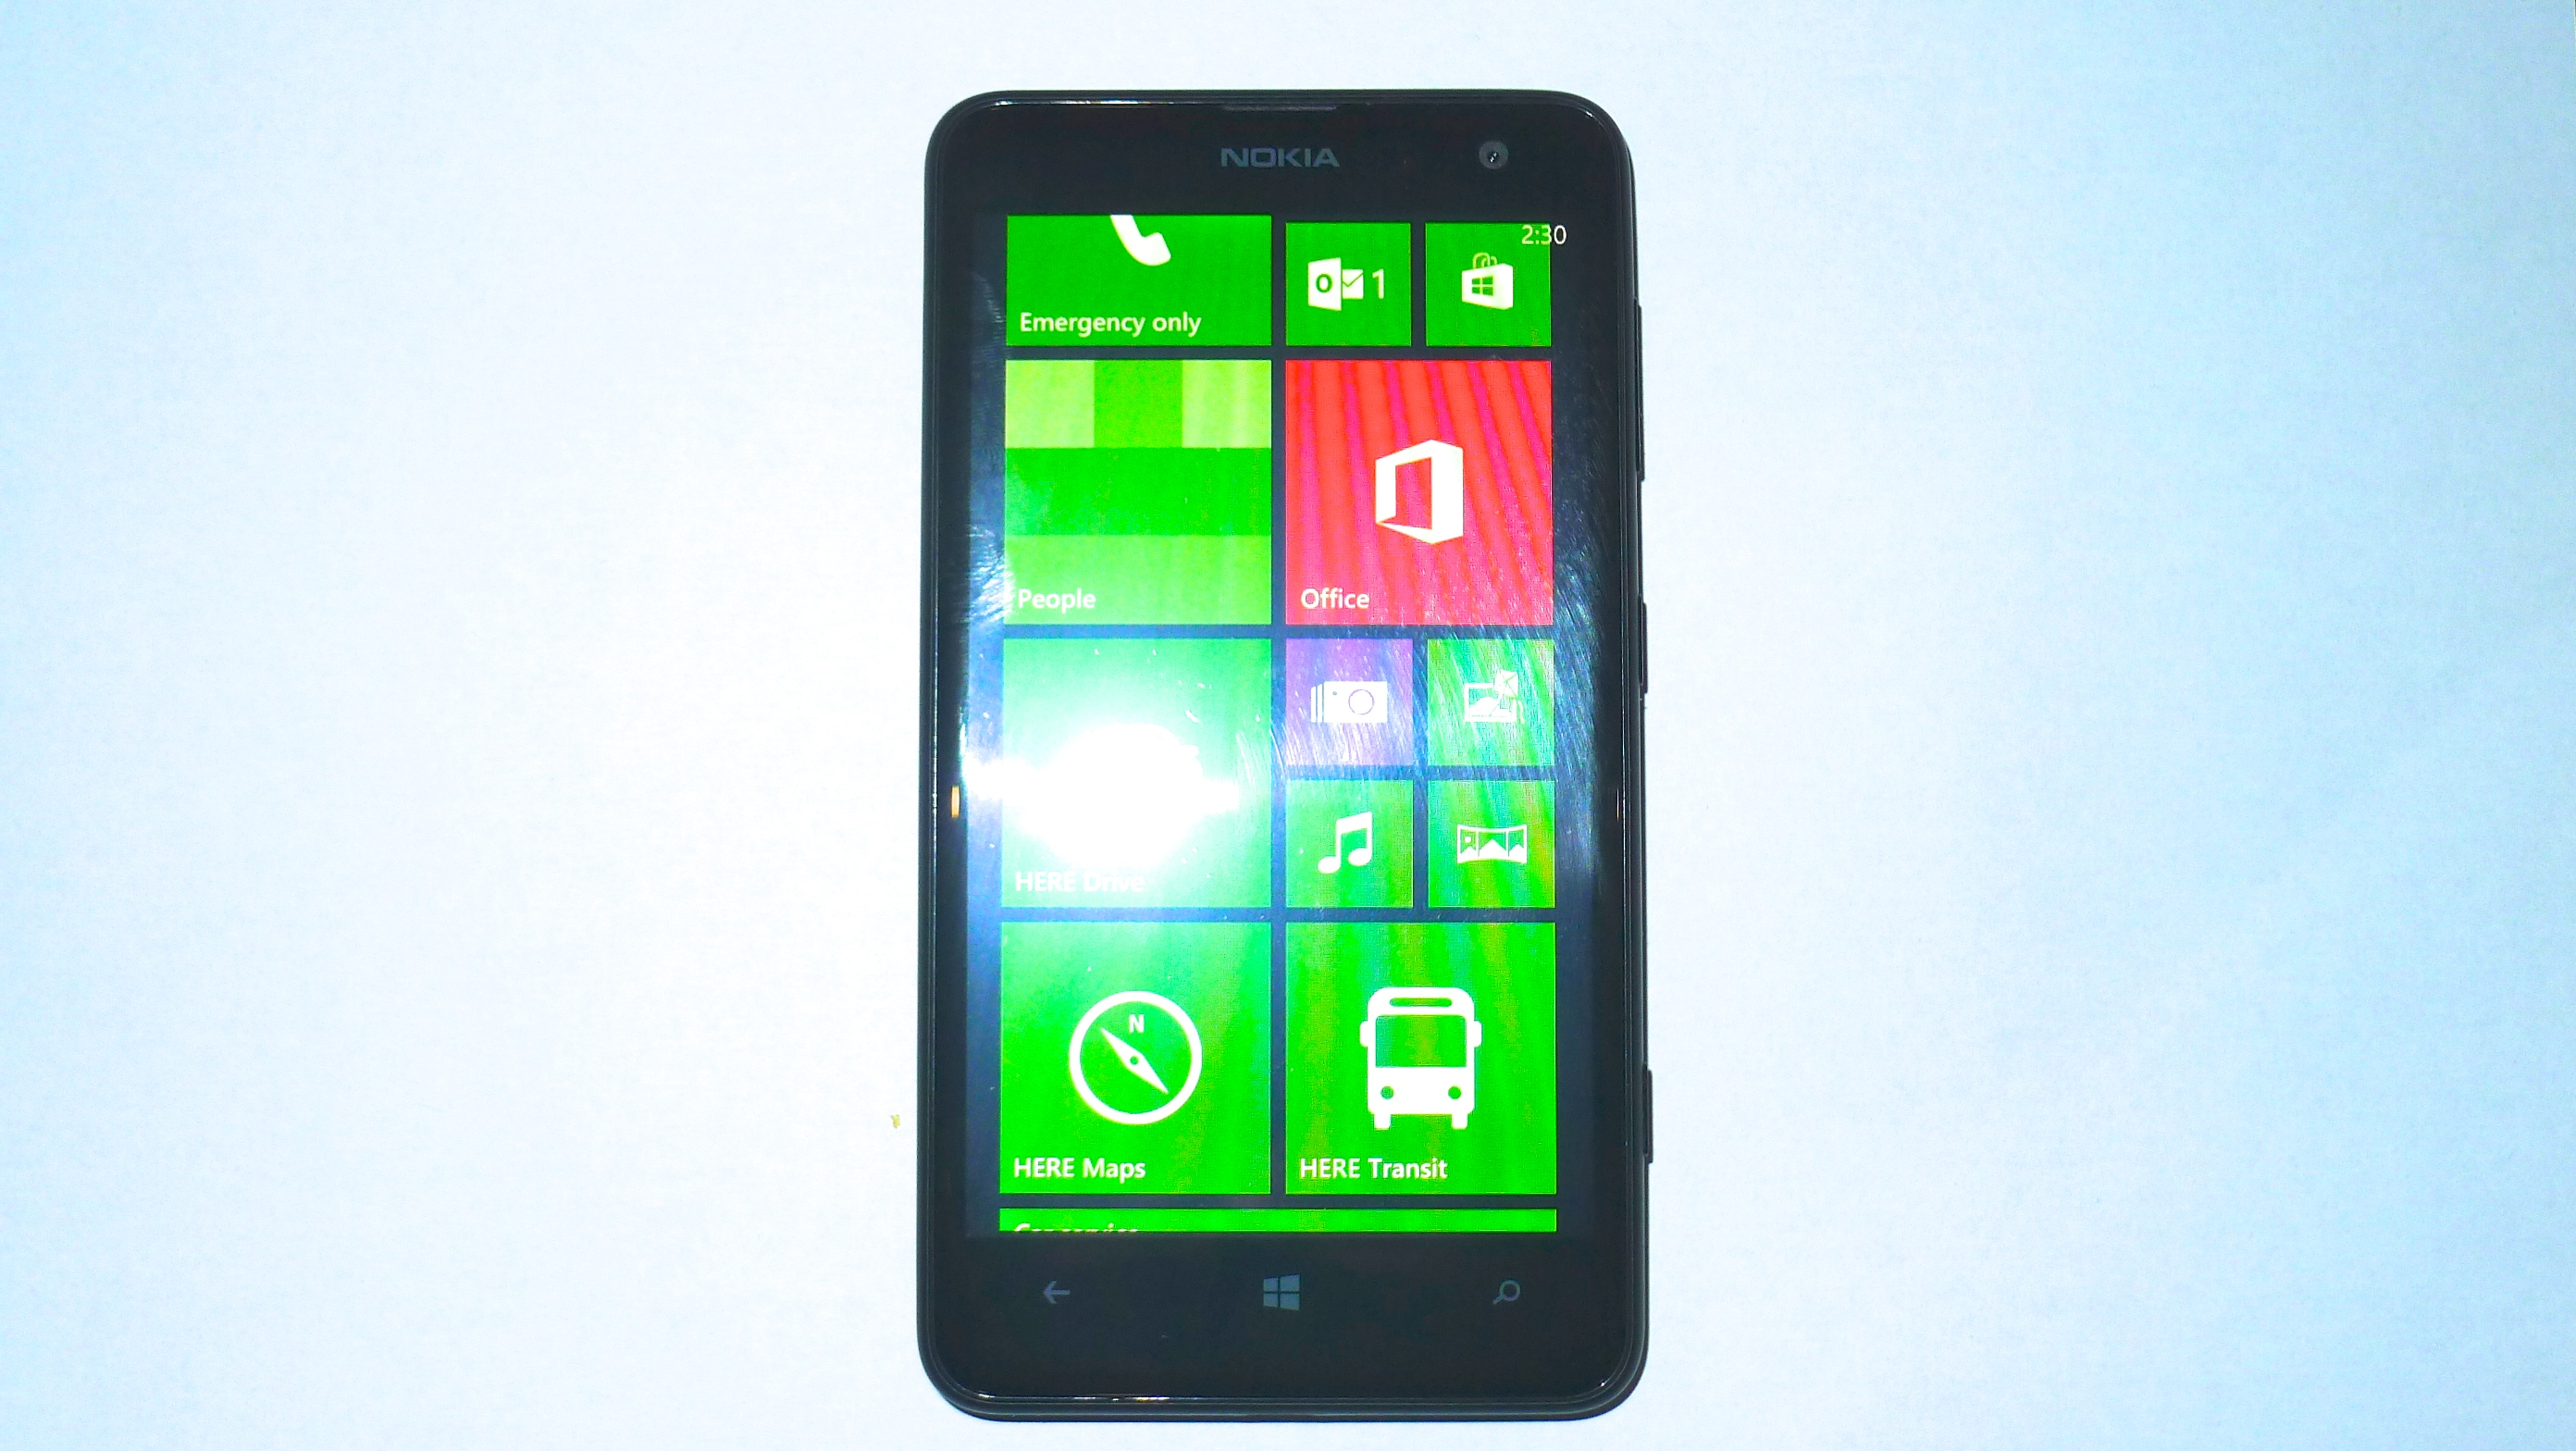 Nokia Lumia 625. Budget smartphone with big but low res screen